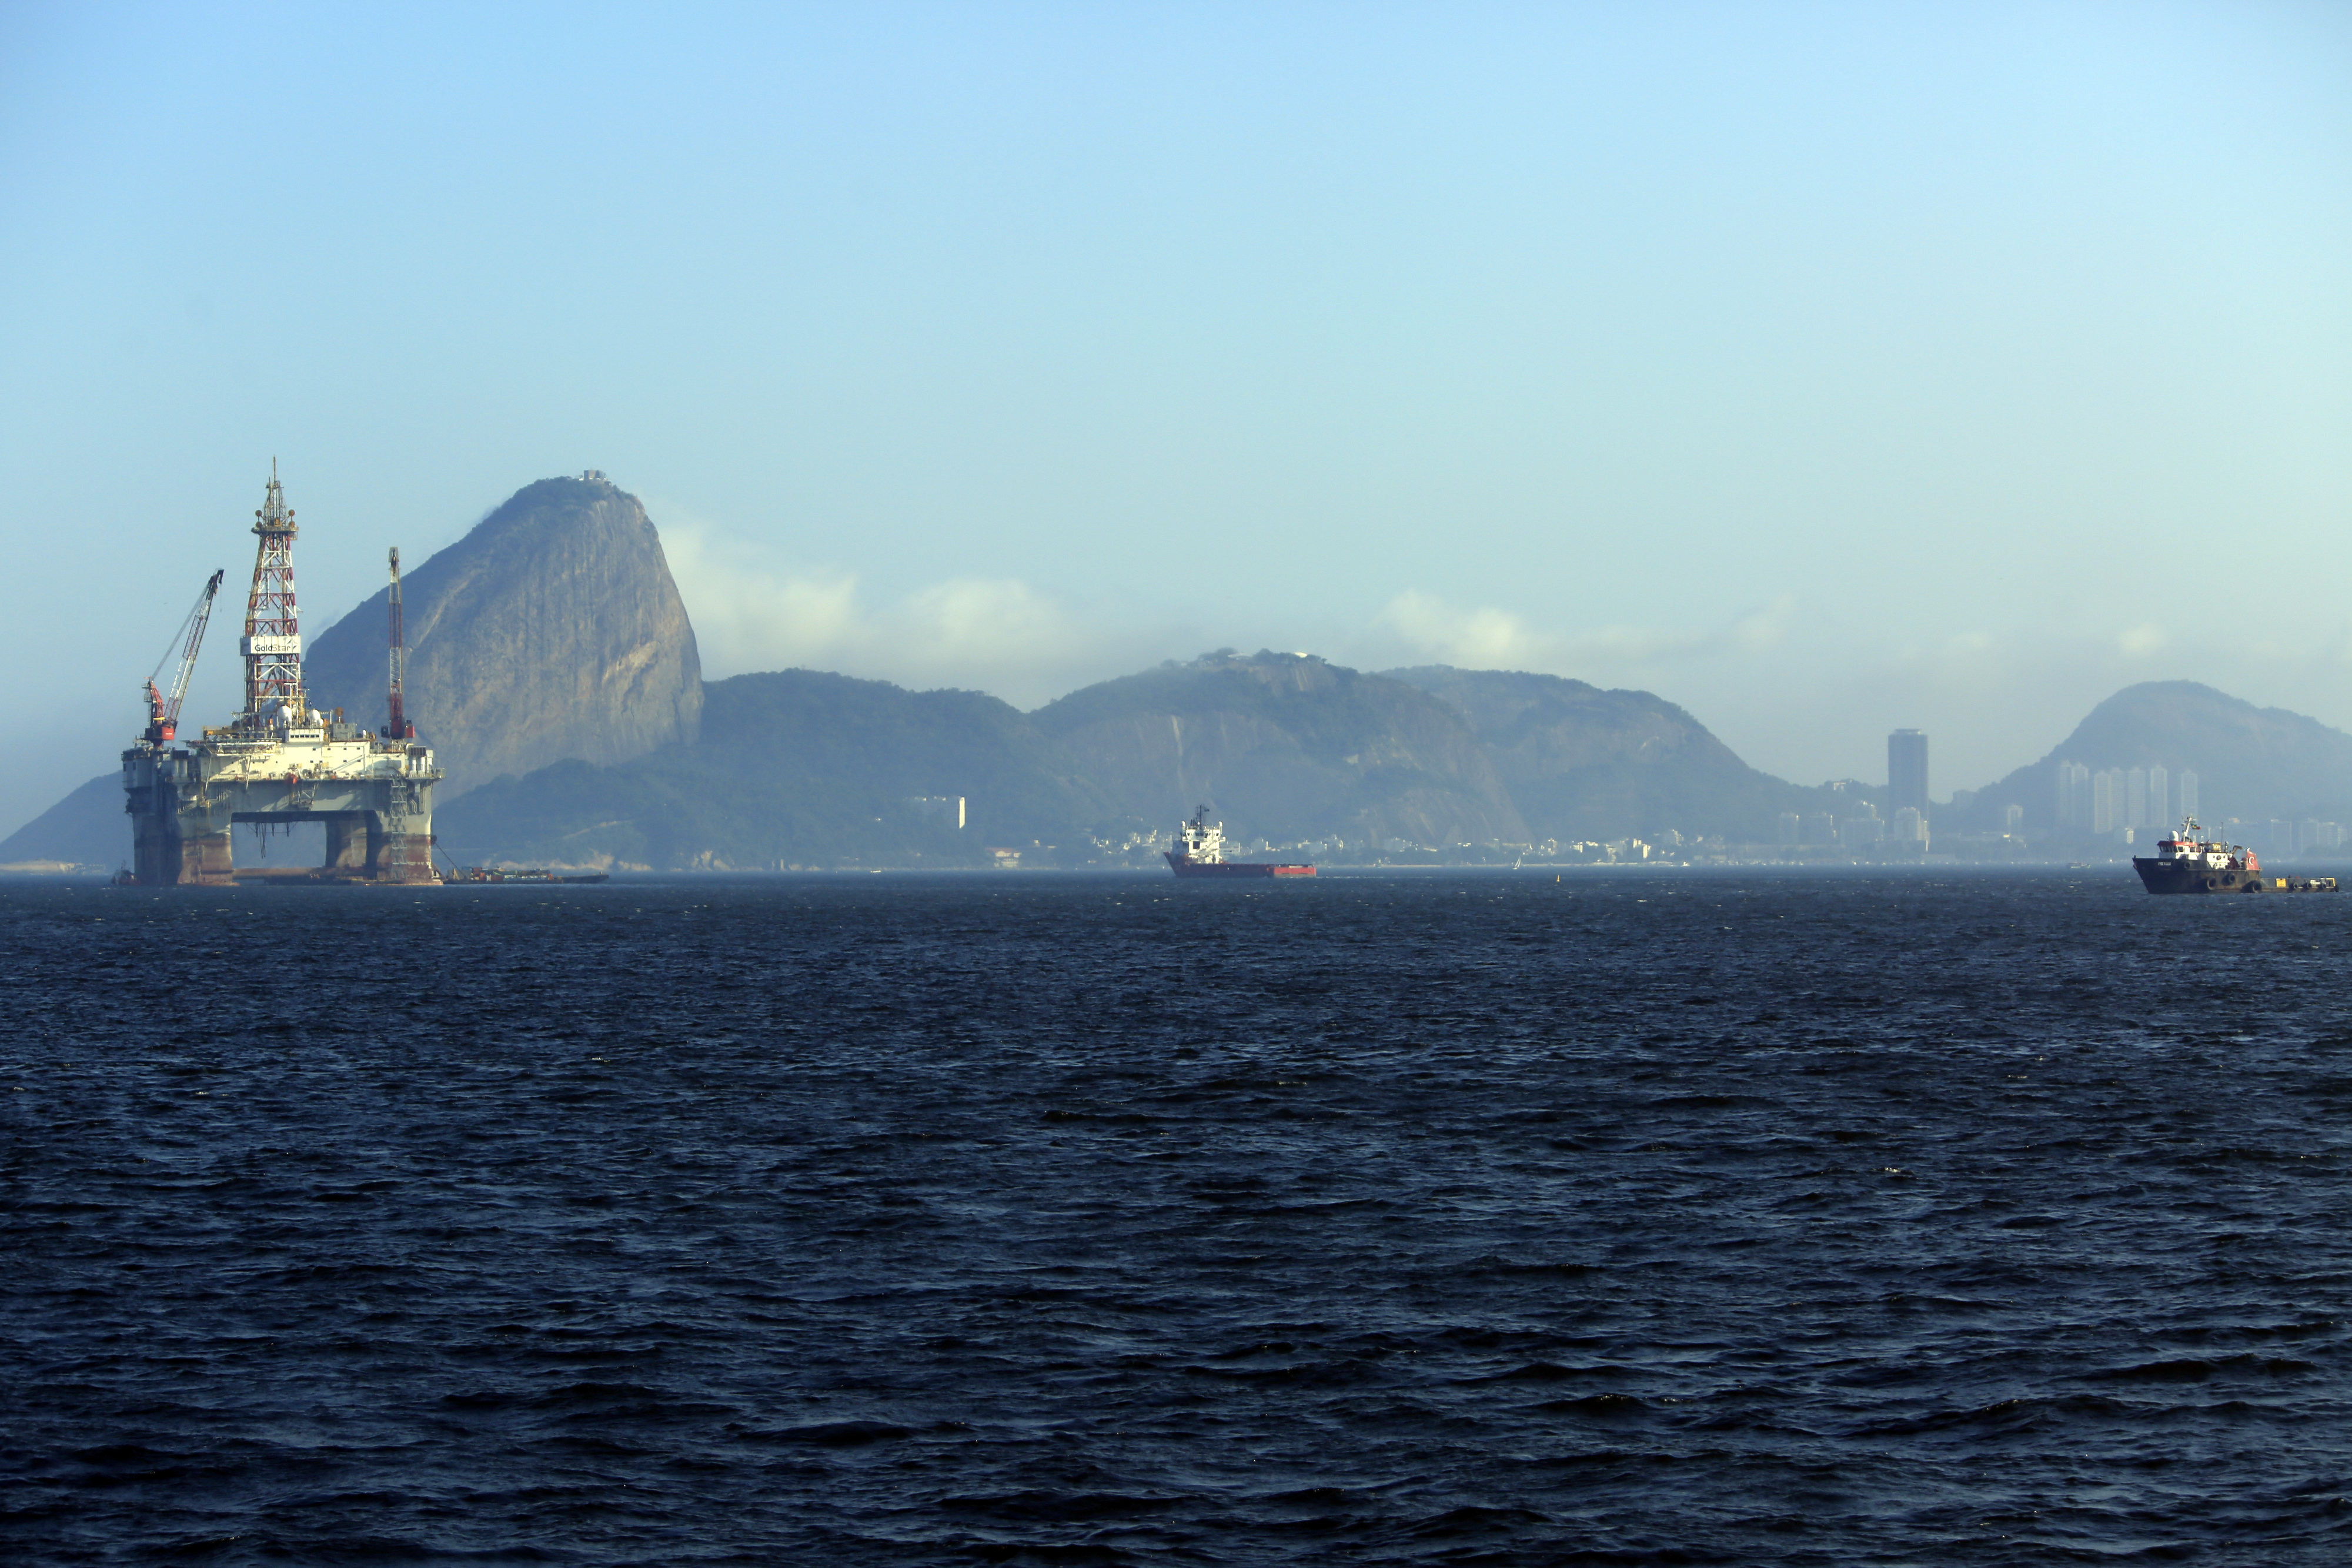 Views Of Oil Platforms in Guanabara Bay Ahead of Petrobras Earnings Results